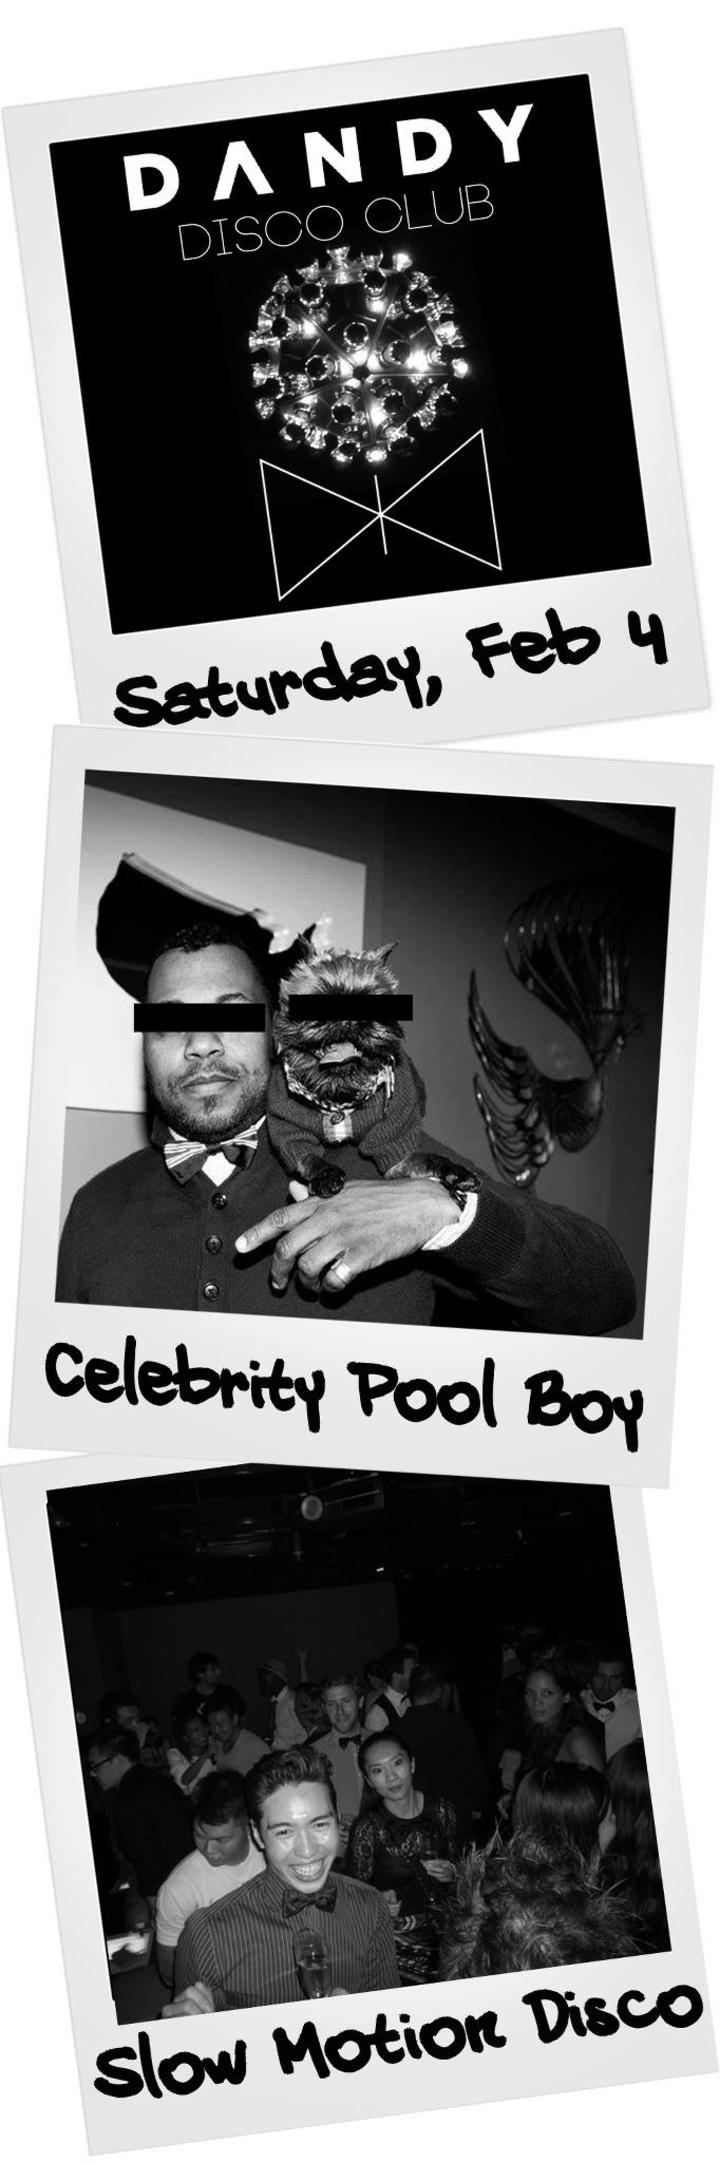 Celebrity Pool Boy Tour Dates